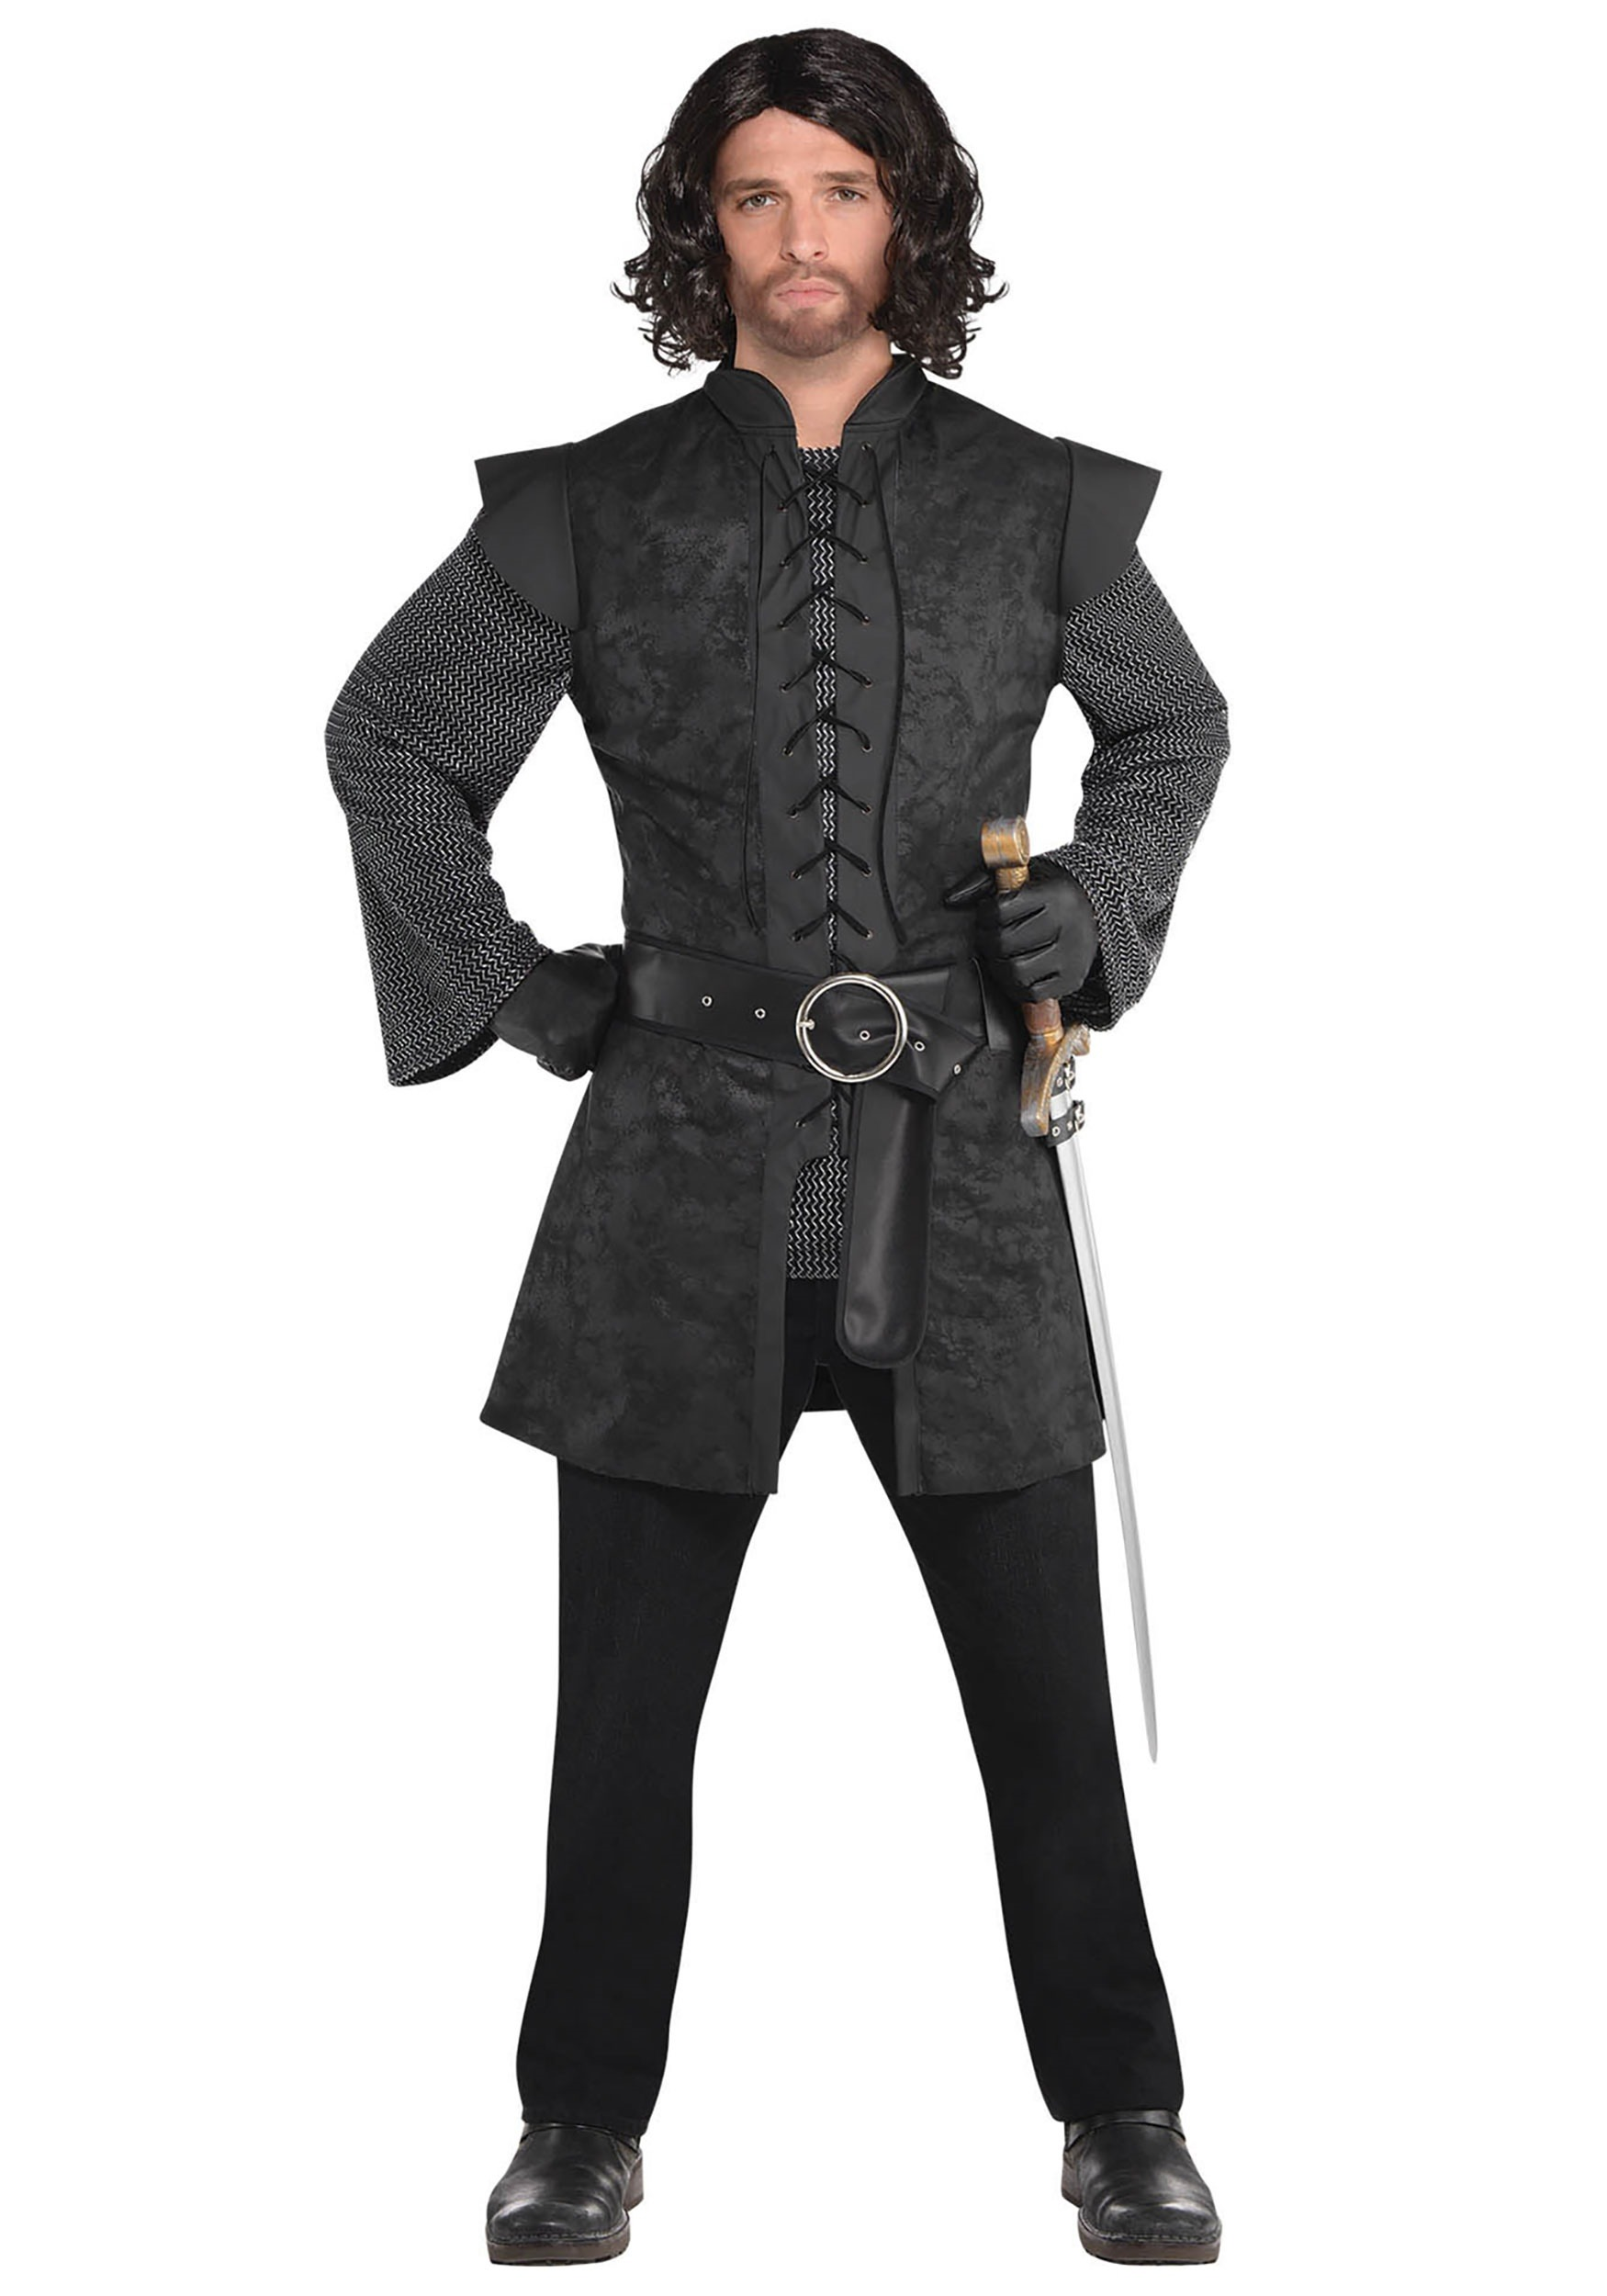 Warrior_Black_Tunic_Mens_Costume